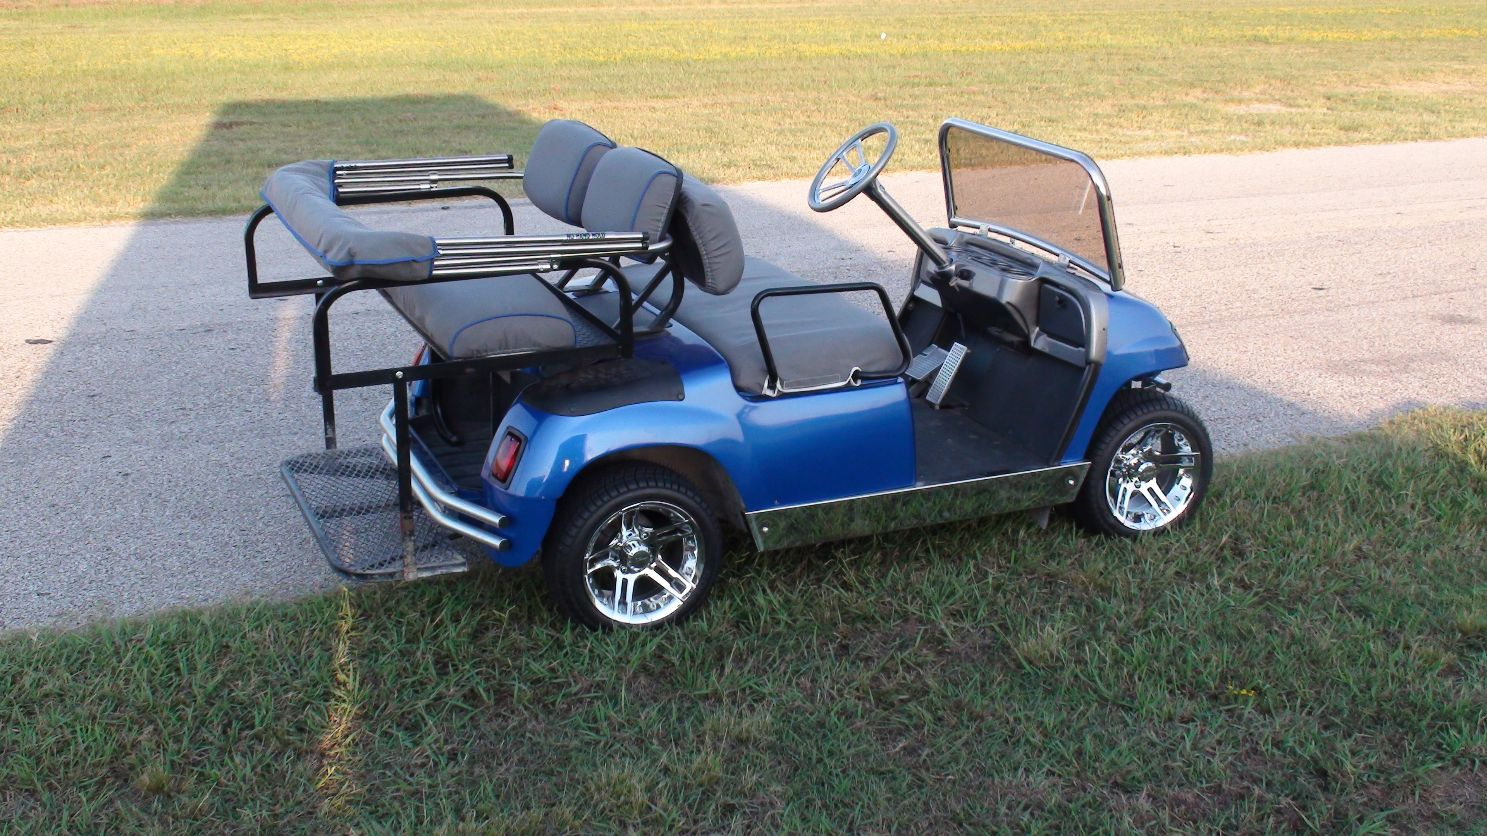 Golf Cart tops roofs canopies|soft convertible|solar  Club Car Villager Wiring Diagram on 2014 club car parts list, 2014 club car parts diagram, 2014 club car manual, 2014 club car solenoid, 2014 club car transmission,